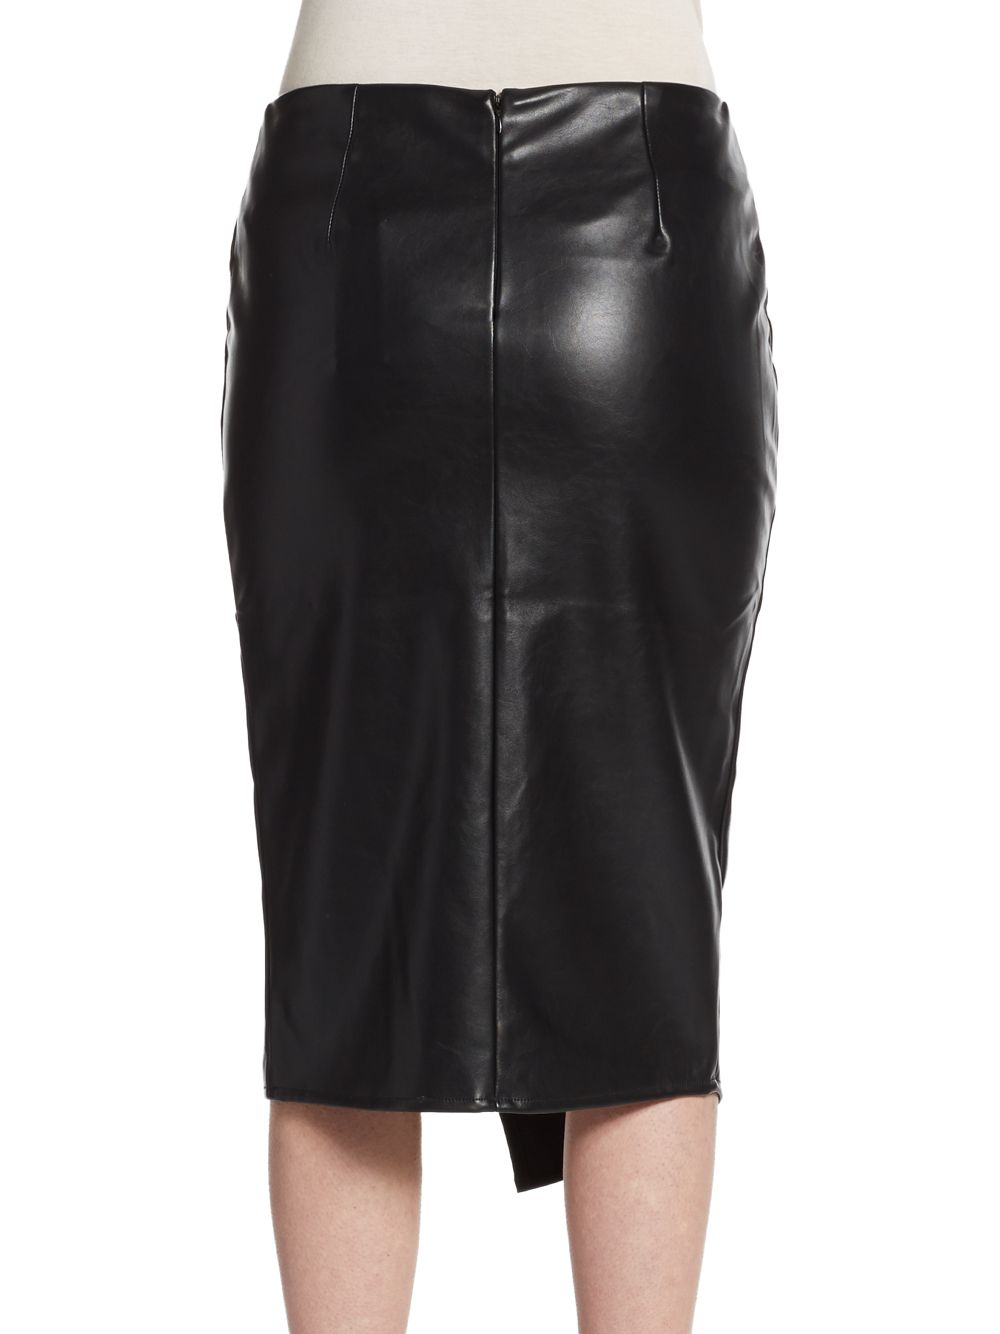 romeo and juliet couture faux leather slit pencil skirt in